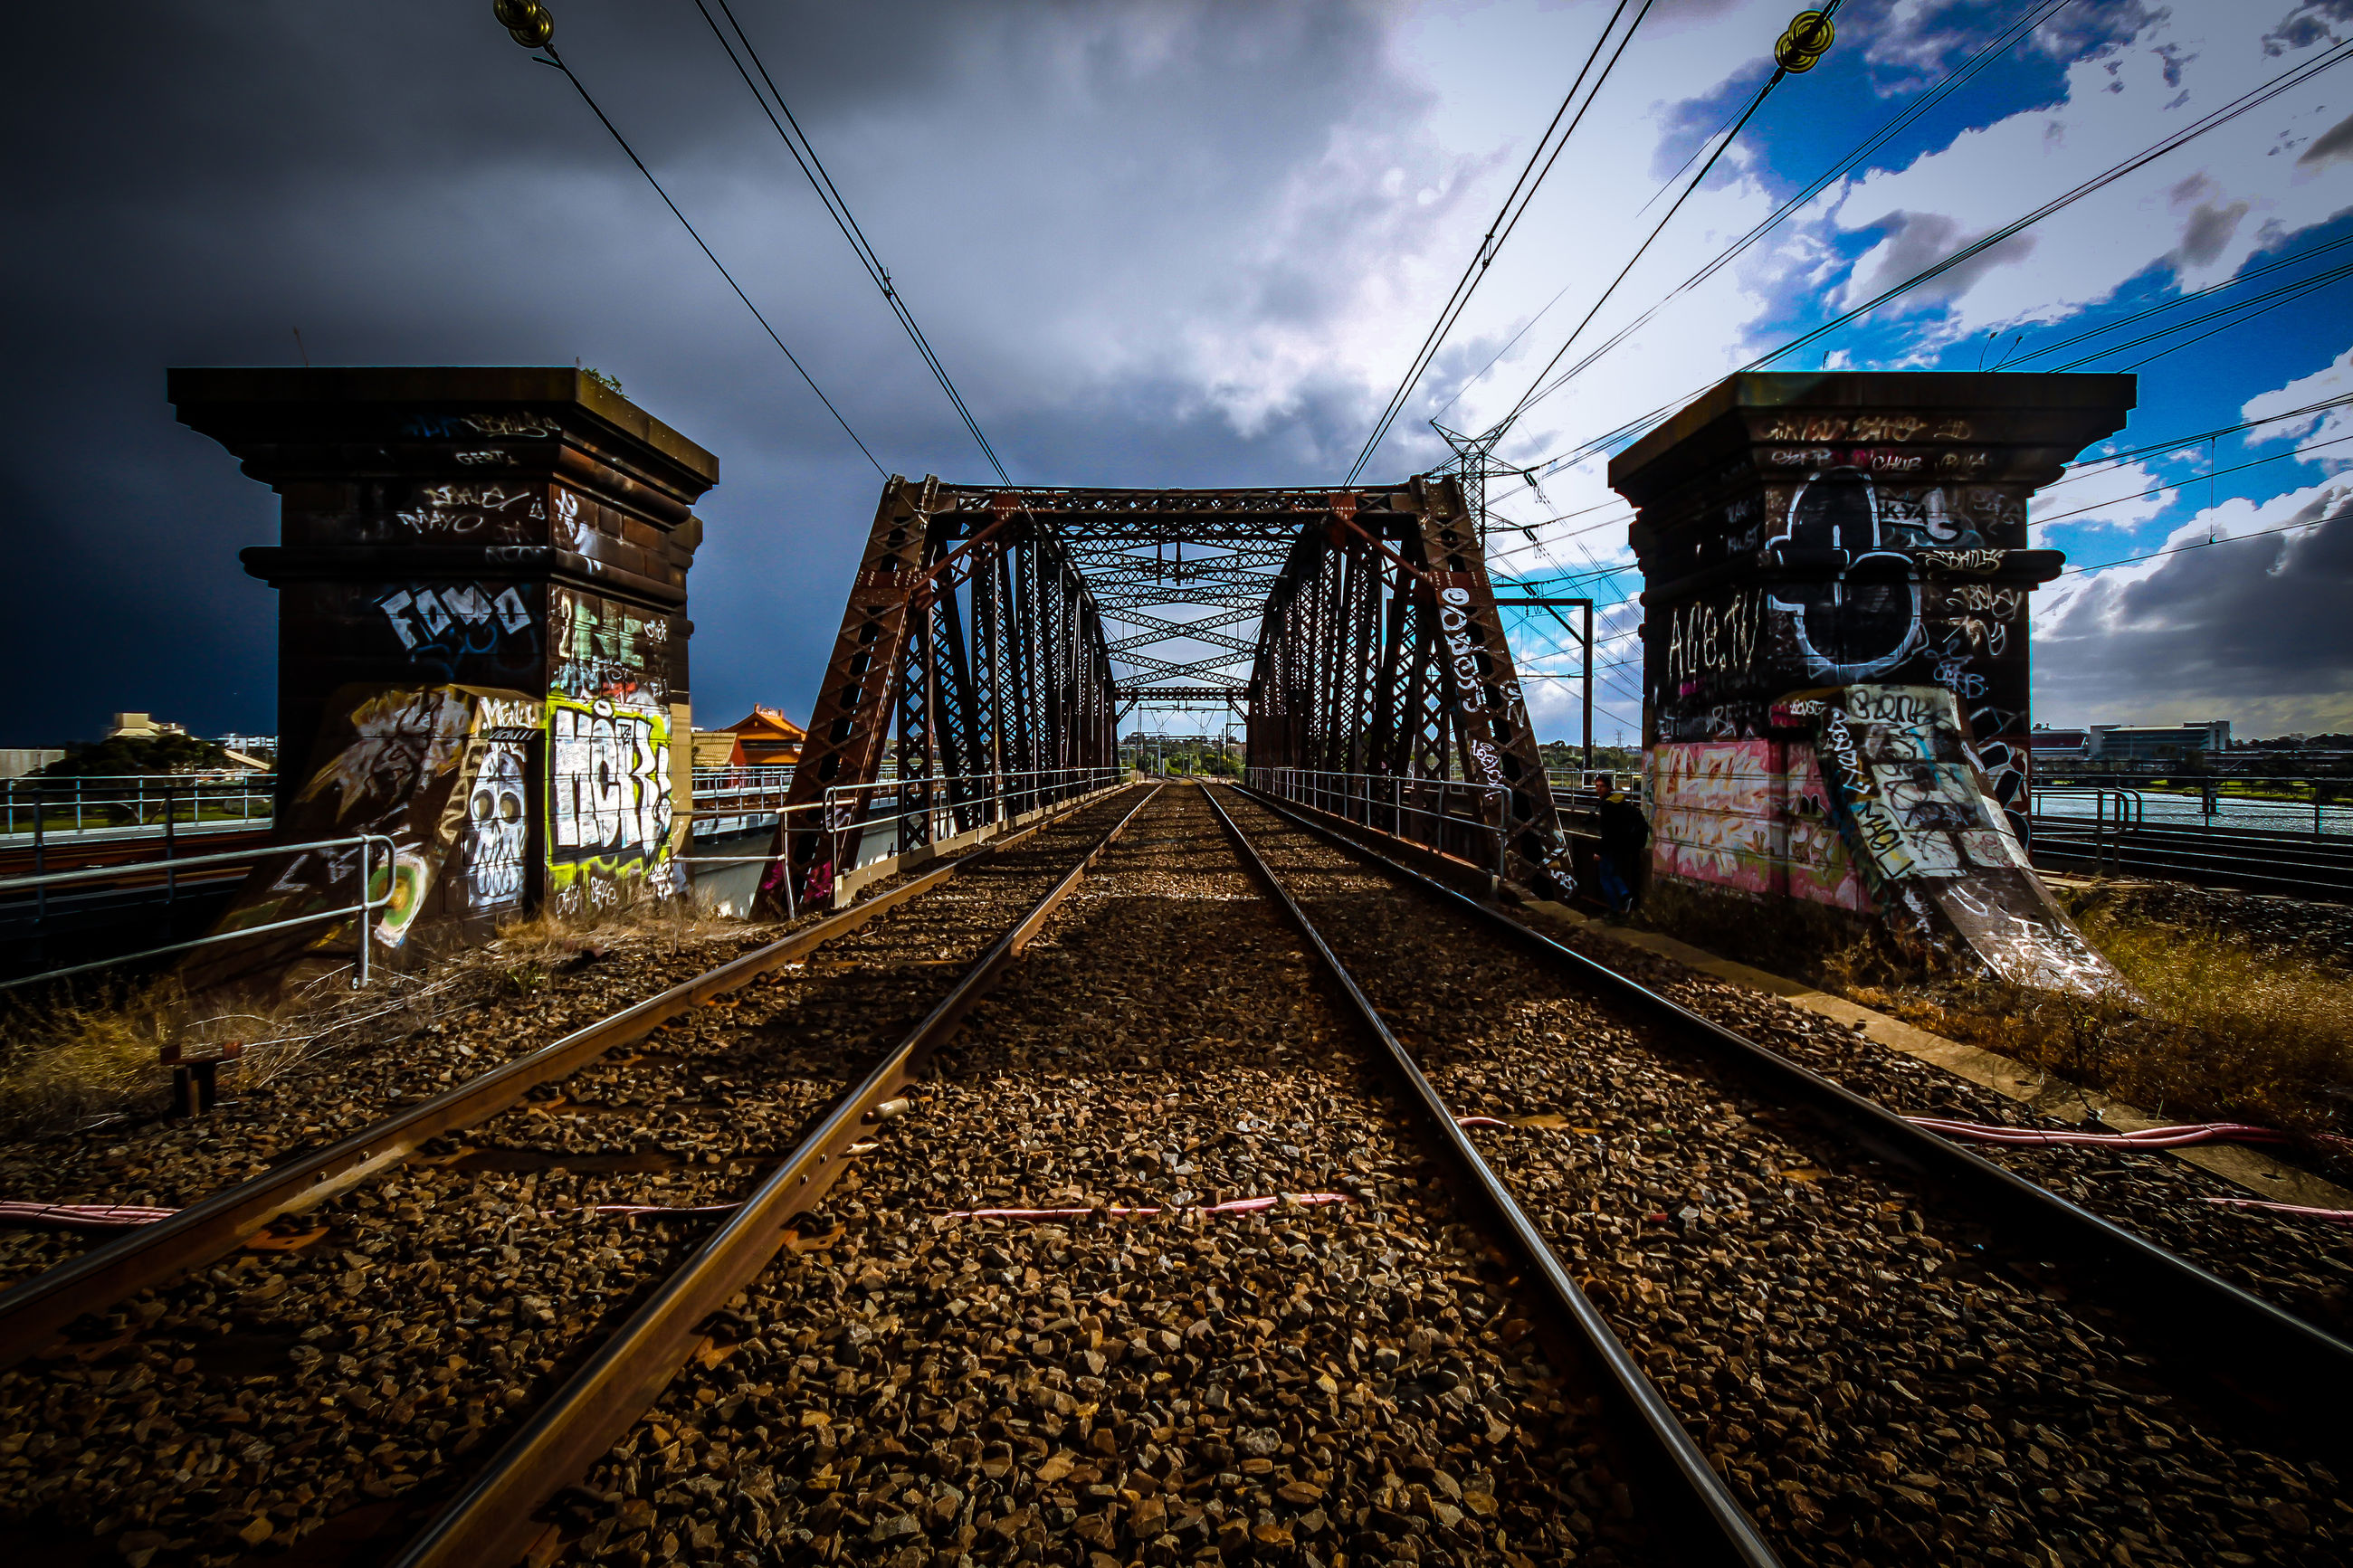 railroad track, rail transportation, sky, architecture, built structure, transportation, diminishing perspective, the way forward, public transportation, connection, cloud - sky, power line, building exterior, vanishing point, railroad station, railway track, cloud, cable, metal, electricity pylon